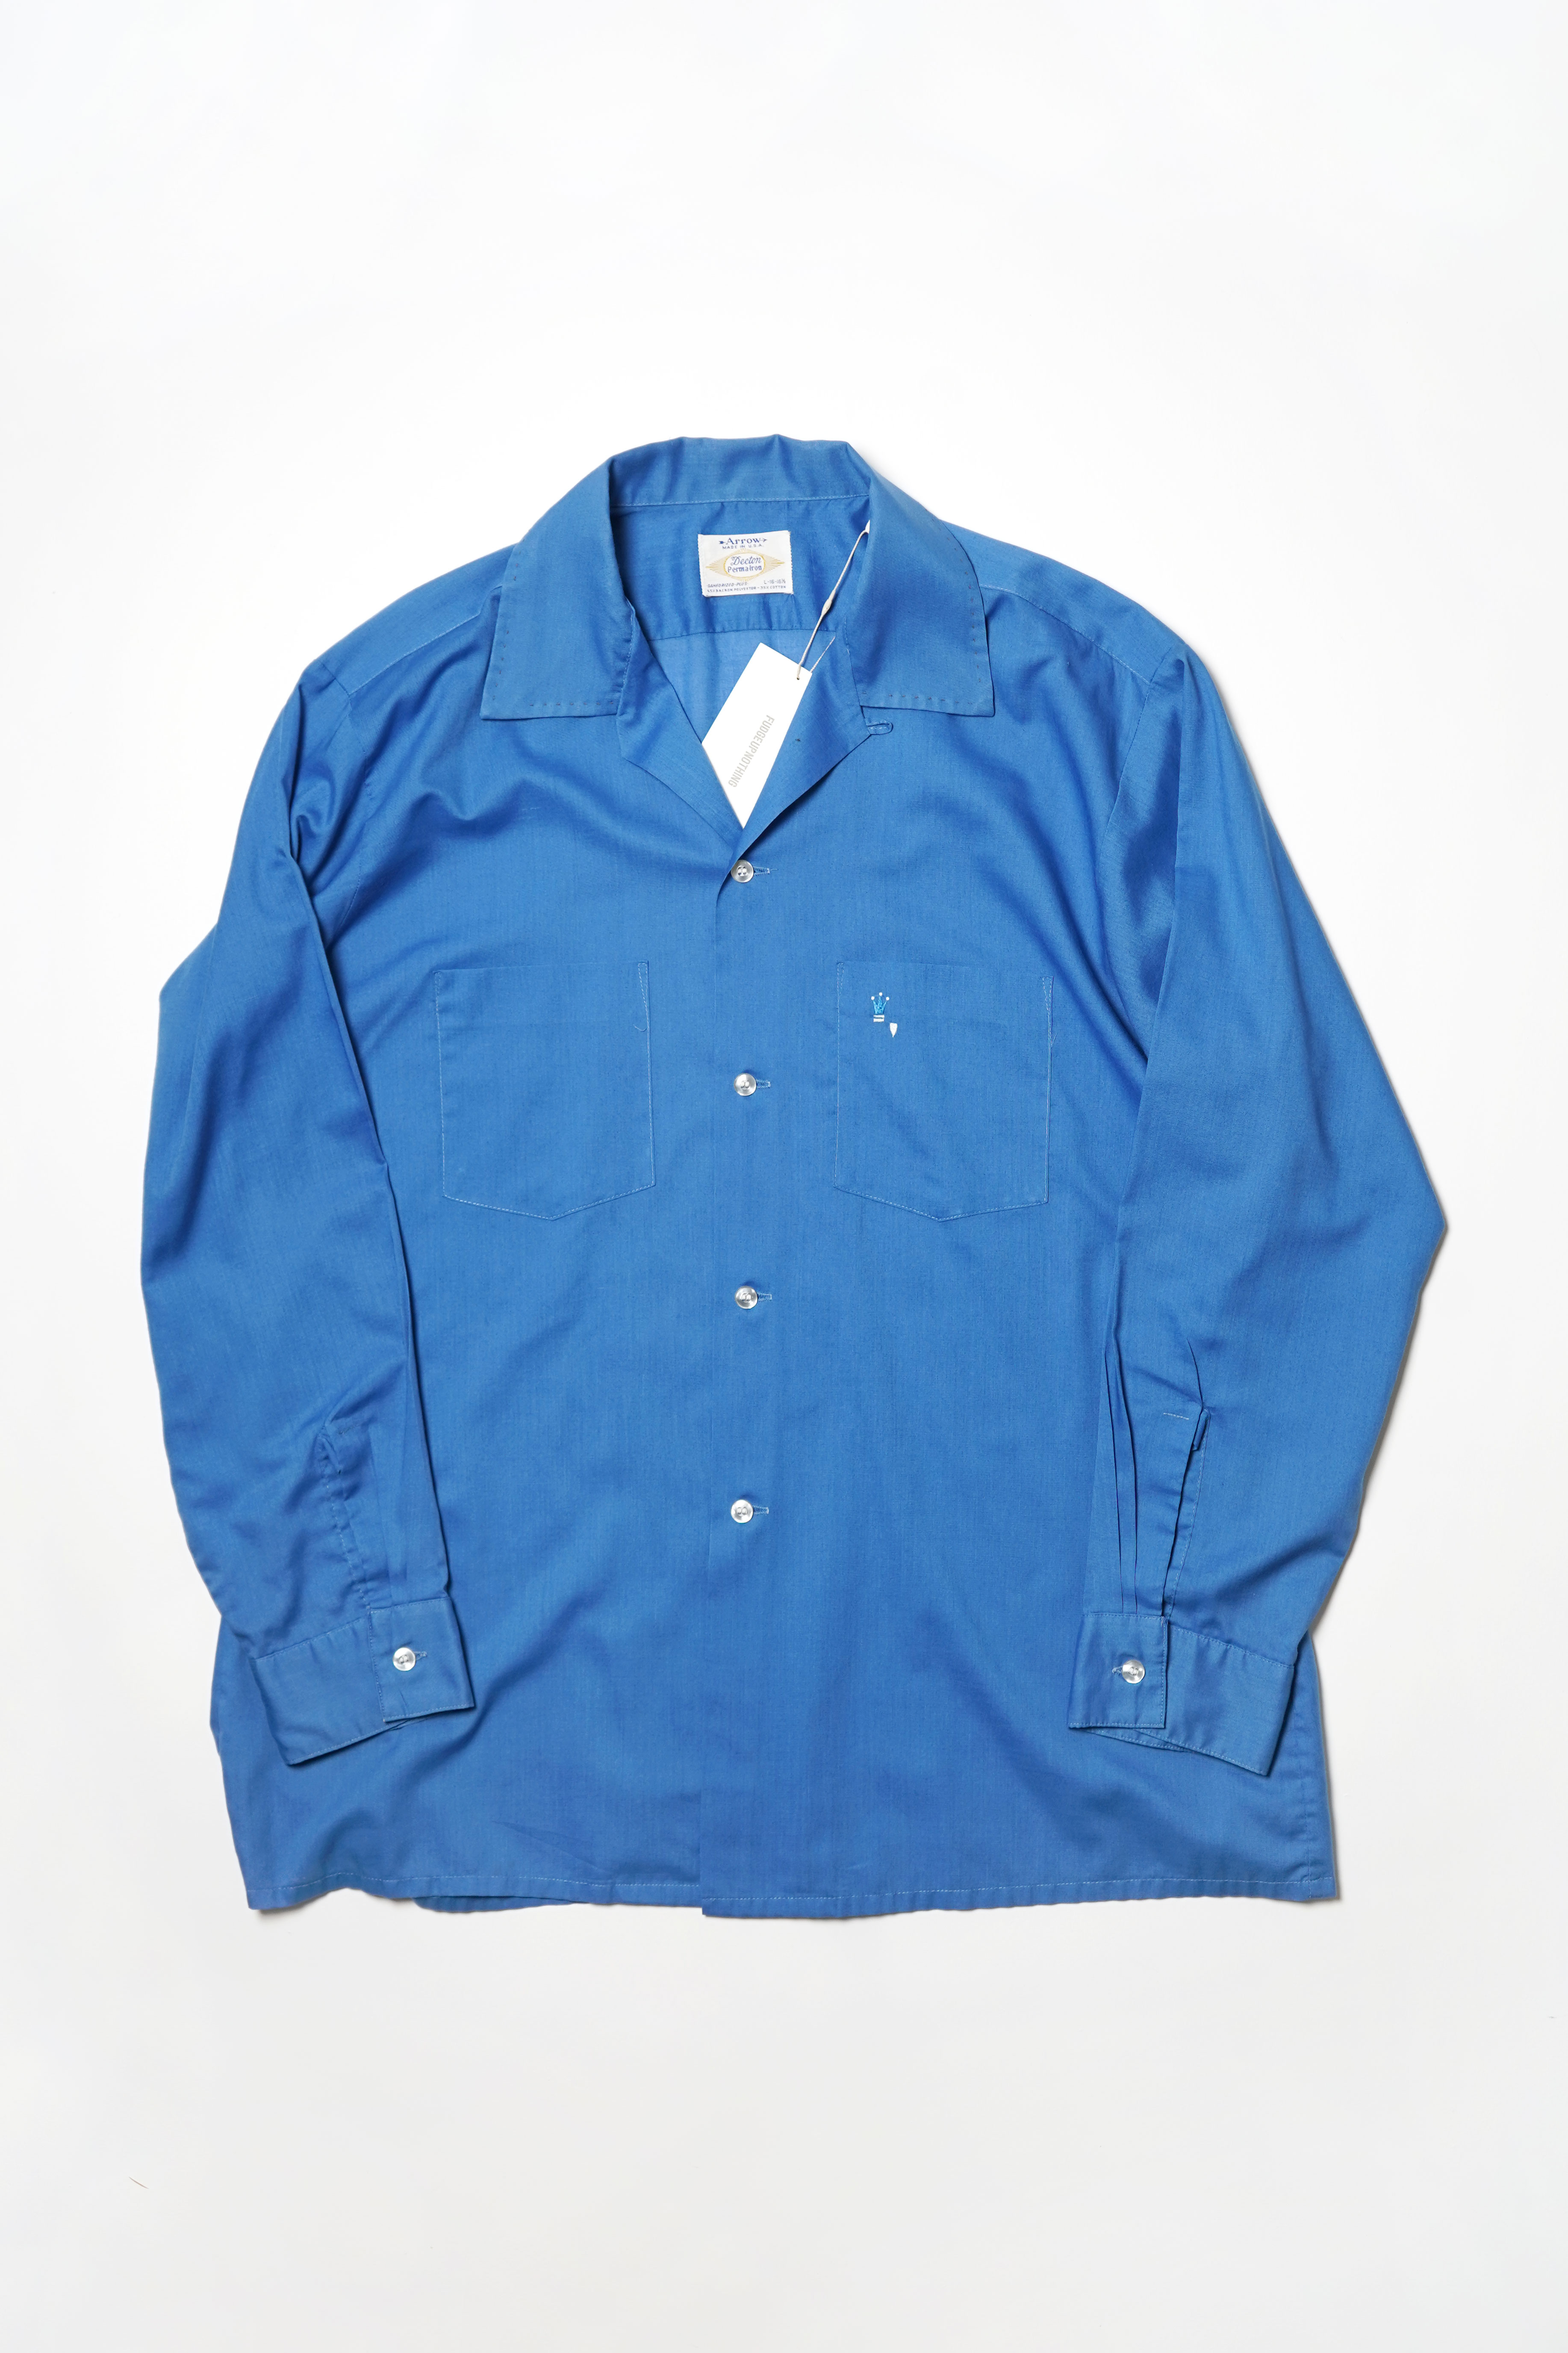 POLYESTER OPEN COLLAR SHIRT BLUE